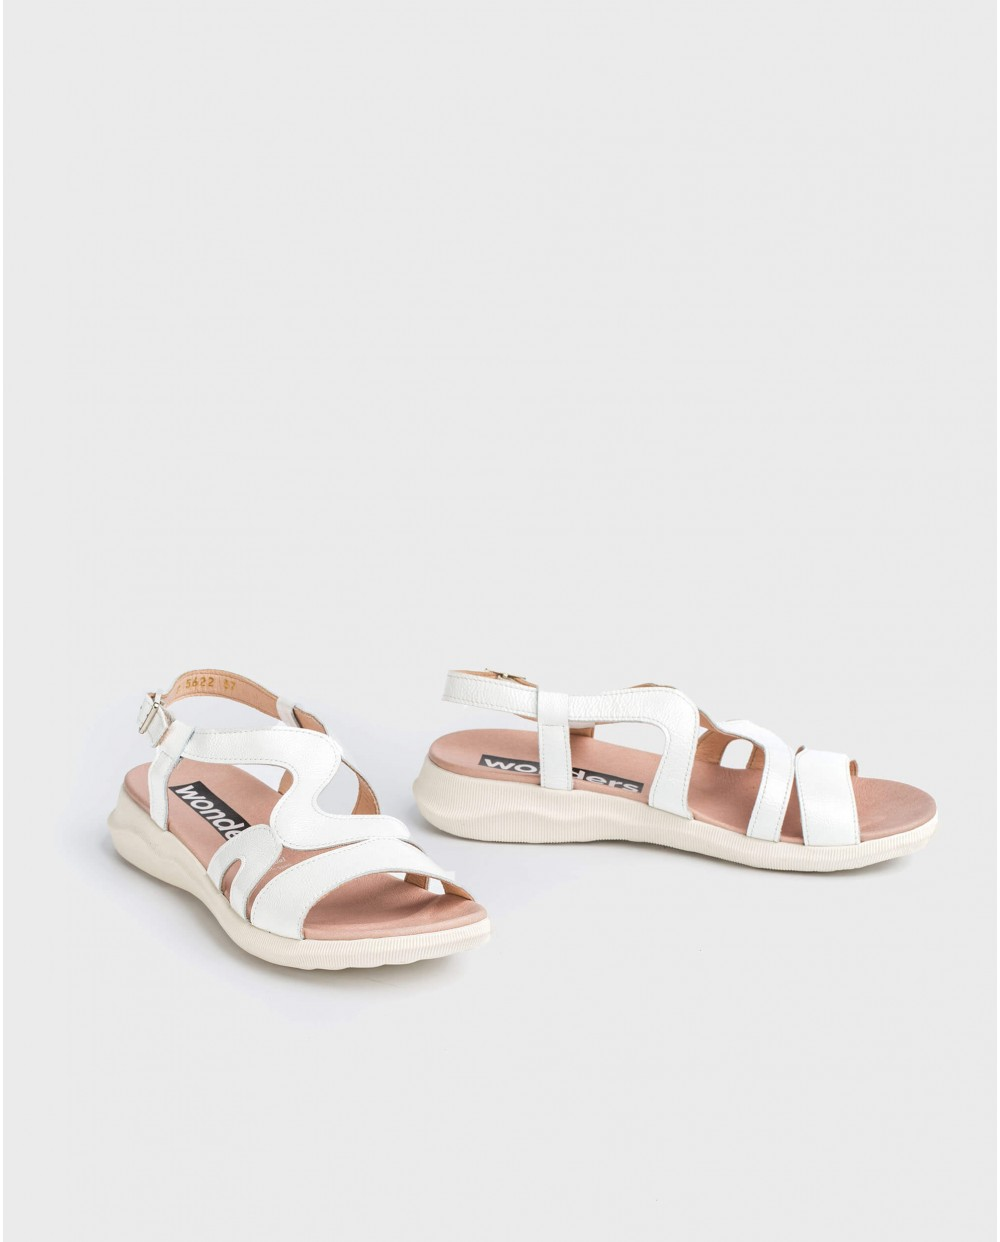 Wonders-Sandals-Sandal with zigzag strap